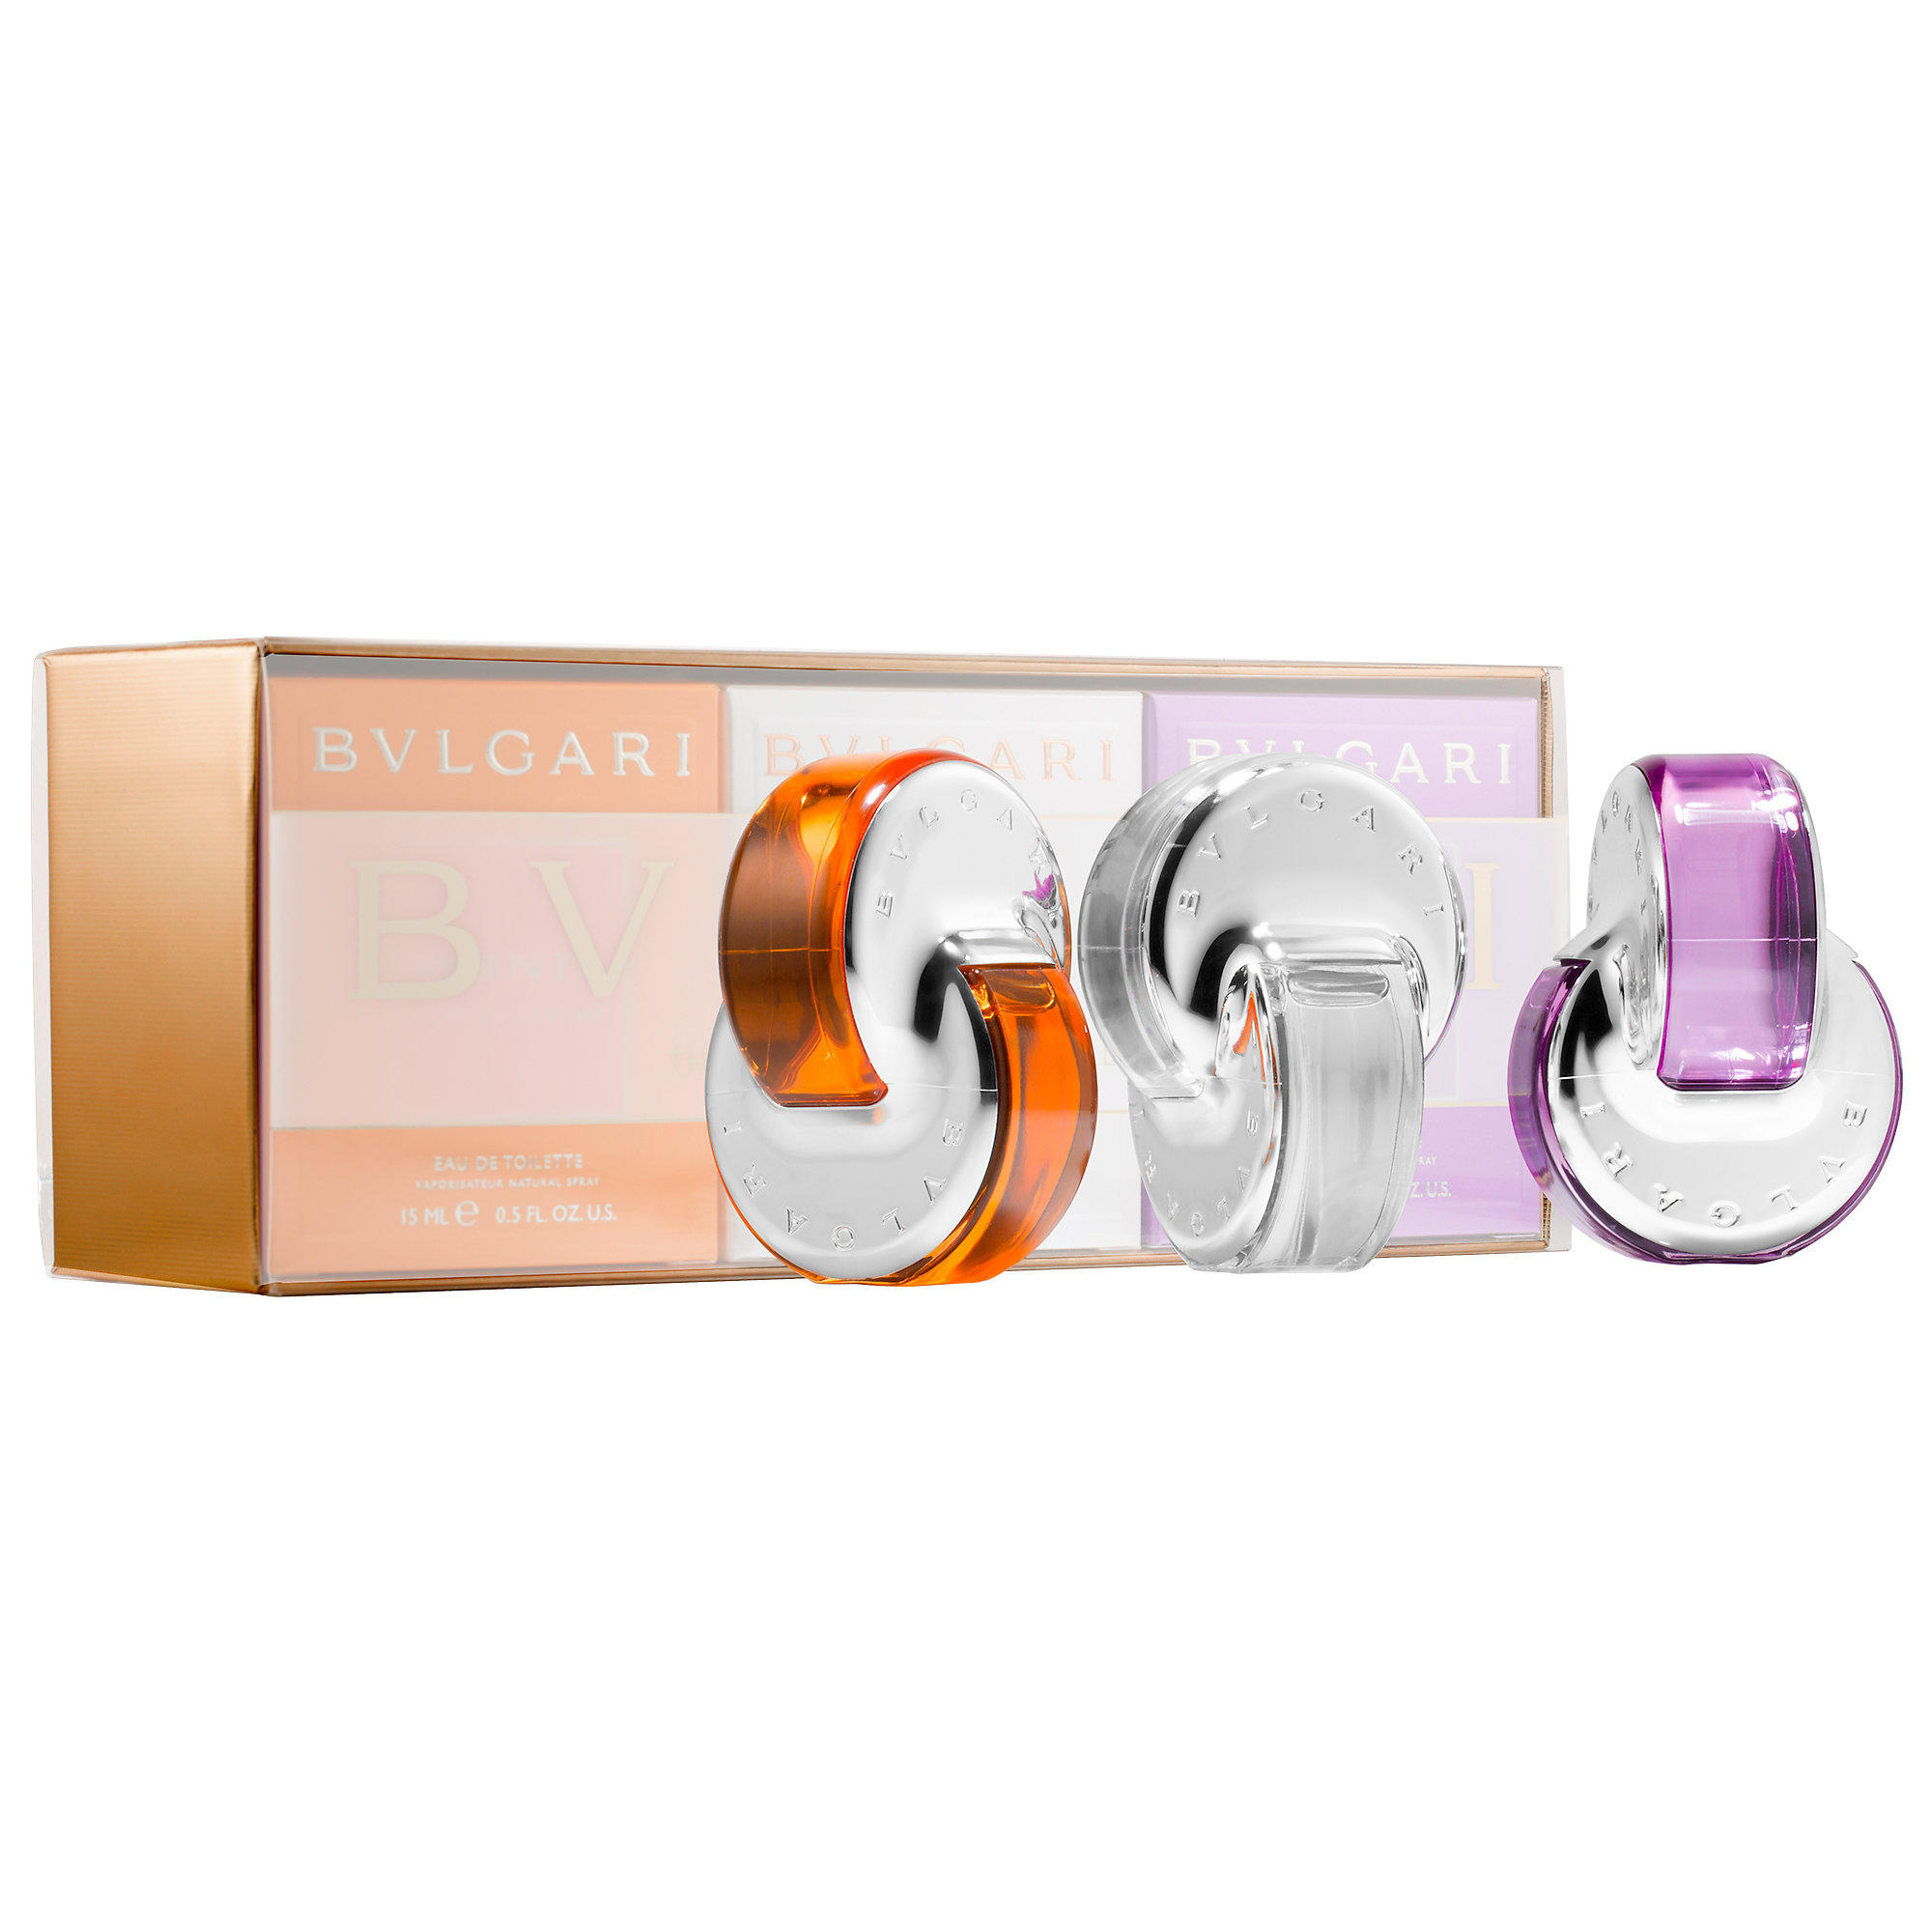 New Release Bvlgari launched New Omnia Purse Spray Collection